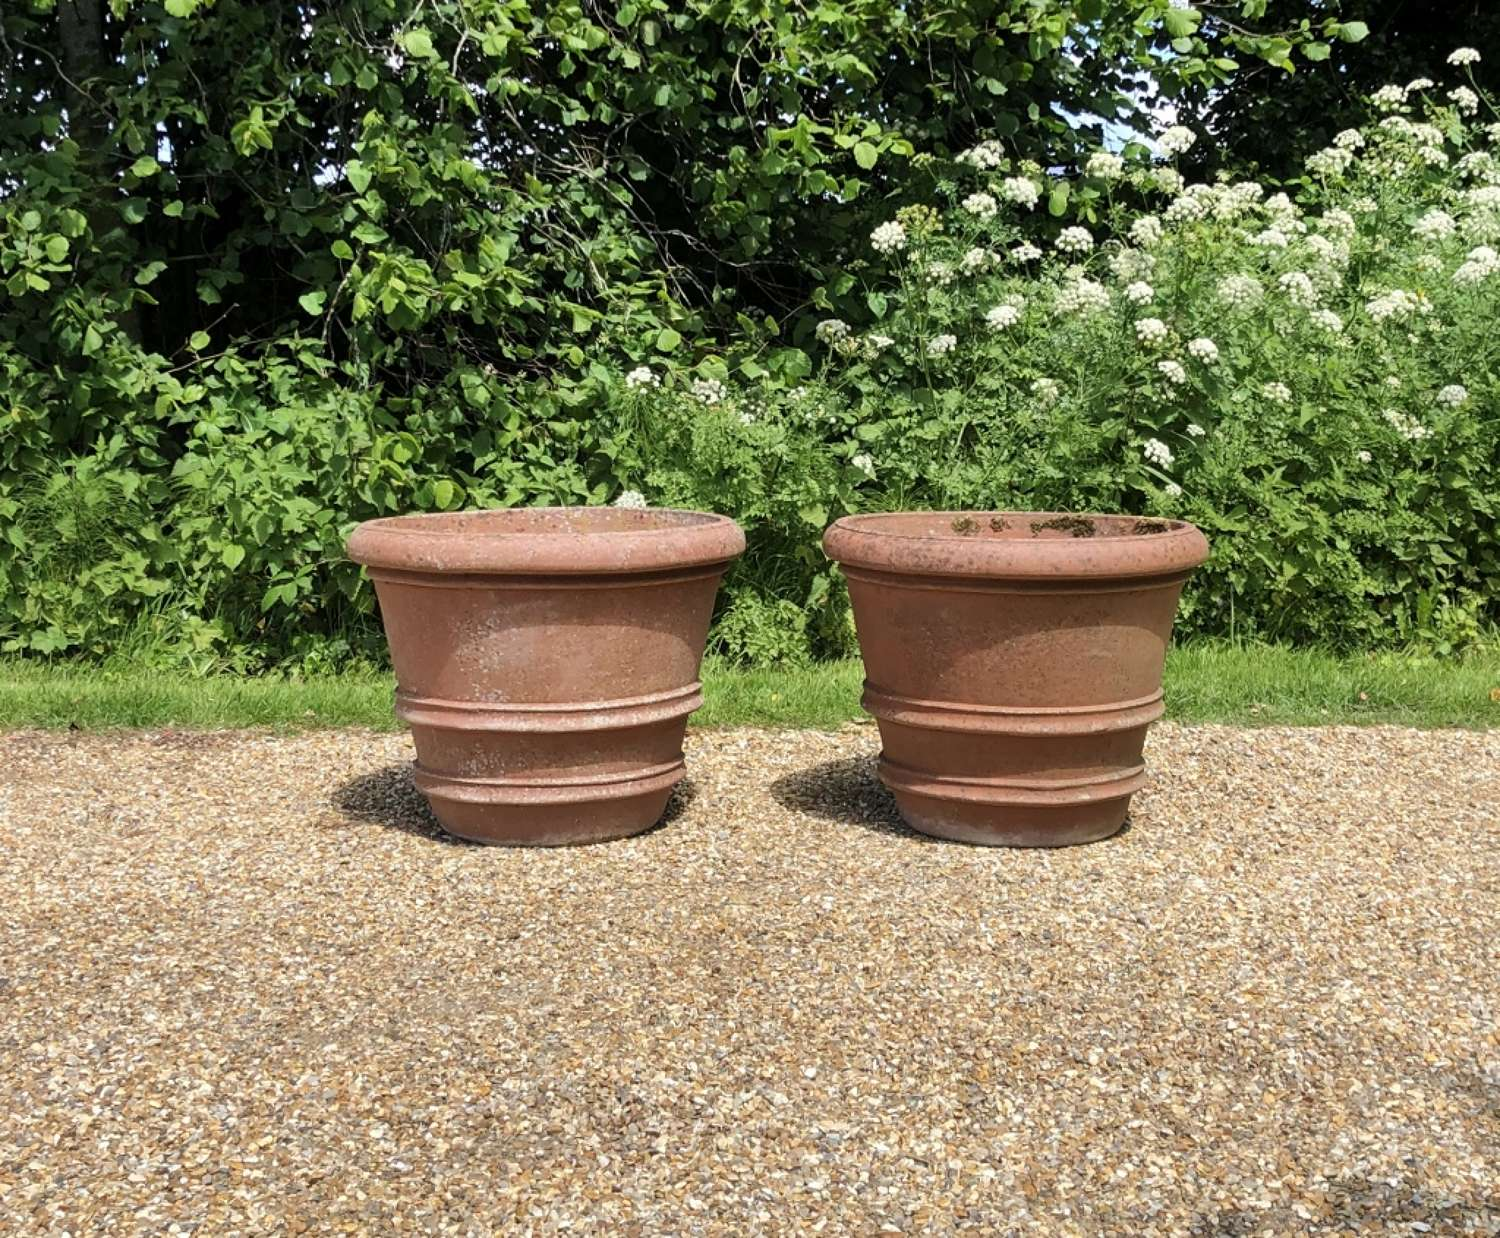 A Pair of Terracotta Planters